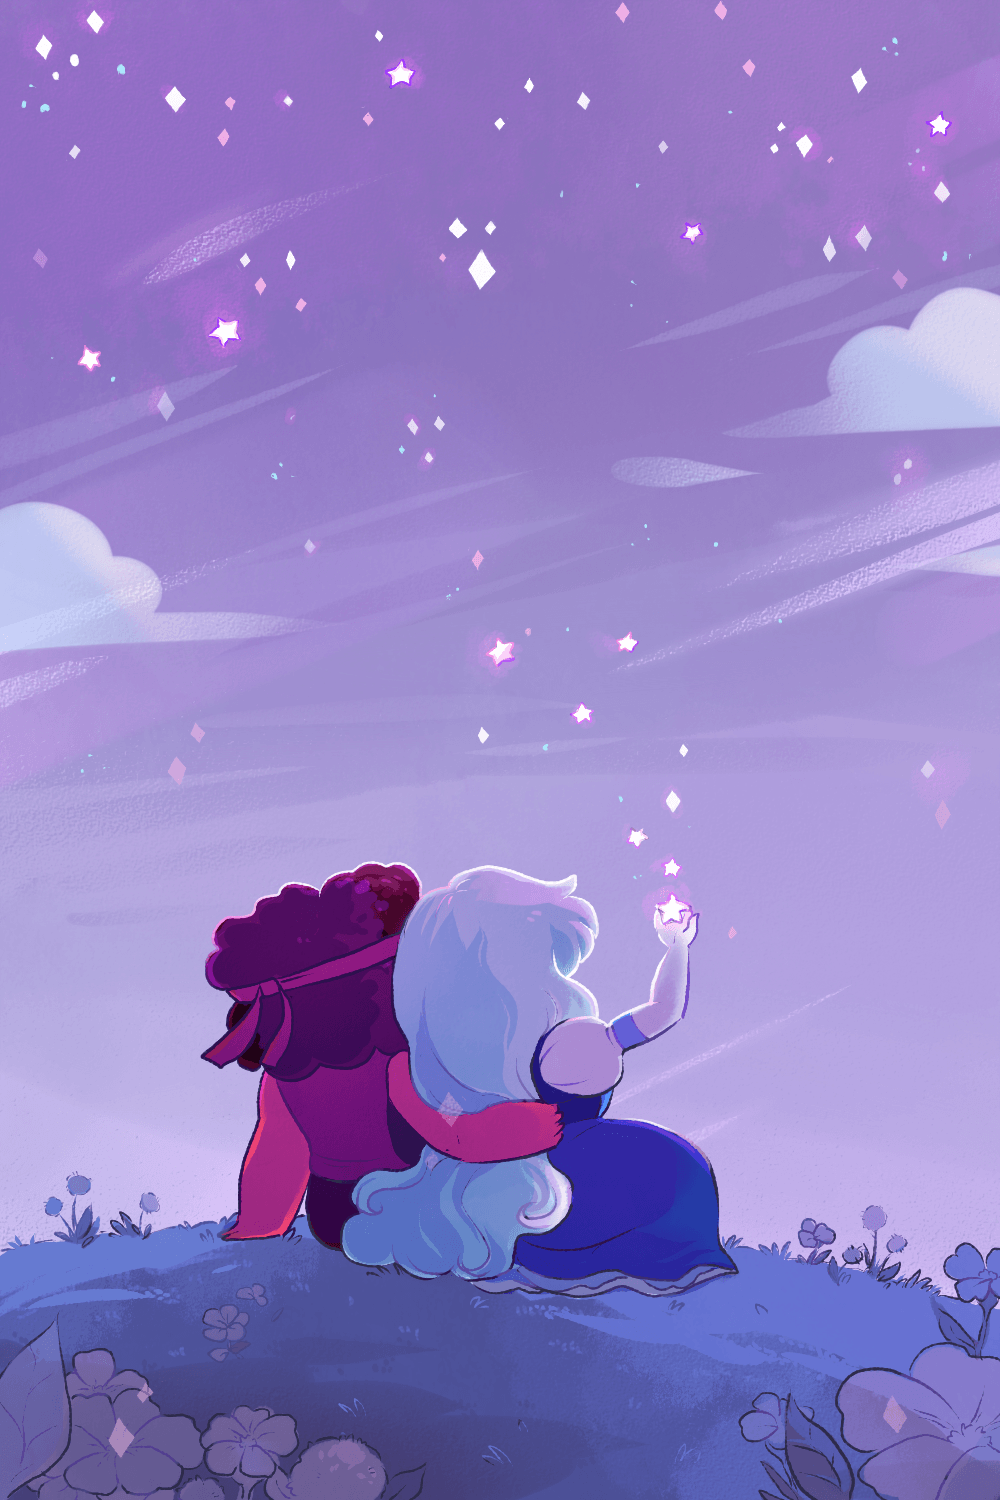 1000x1500 Sometimes it's nice being split up. | The Crystal Gems | Pinterest ...